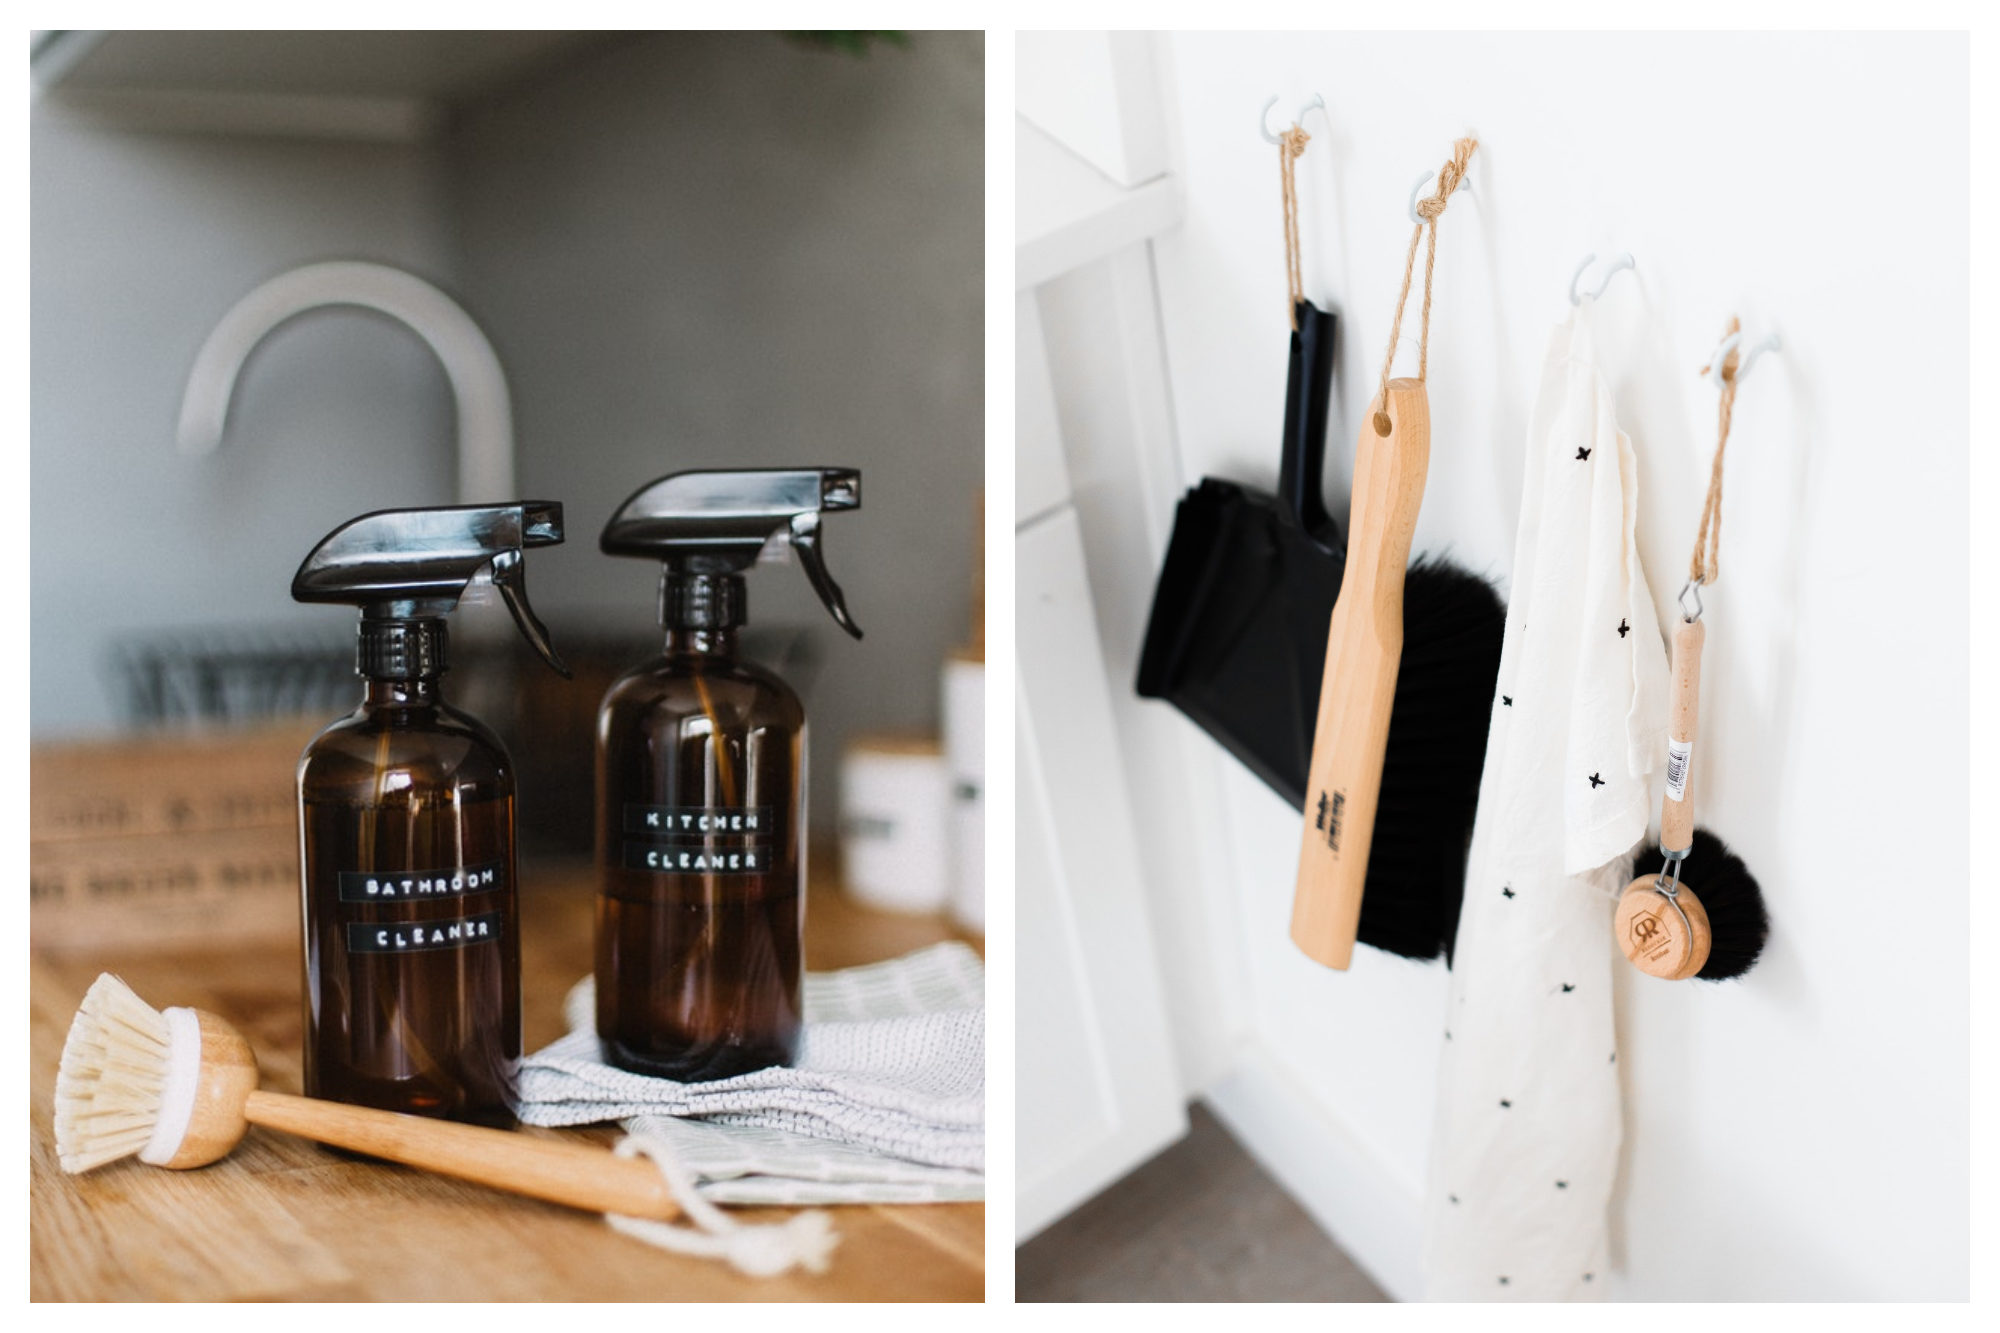 Zero-waste cleaning products and plastic-free brush on a wooden kitchen counter (left). Plastic-free dustpan and brush hanging in a kitchen (right).